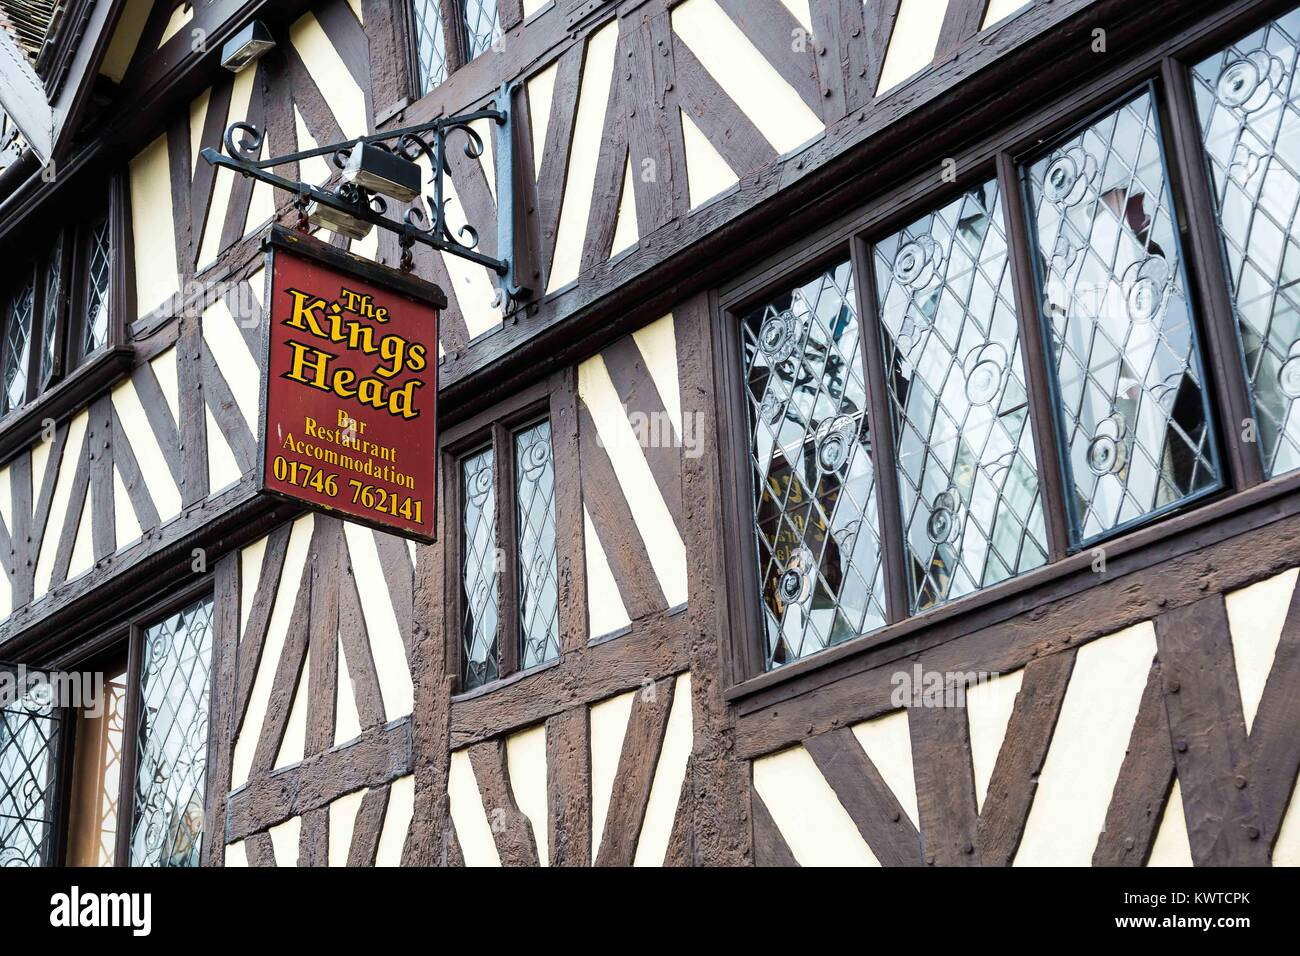 The King's Head Black & white timber framed pub or public house in Bridgnorth, Shropshire - Stock Image